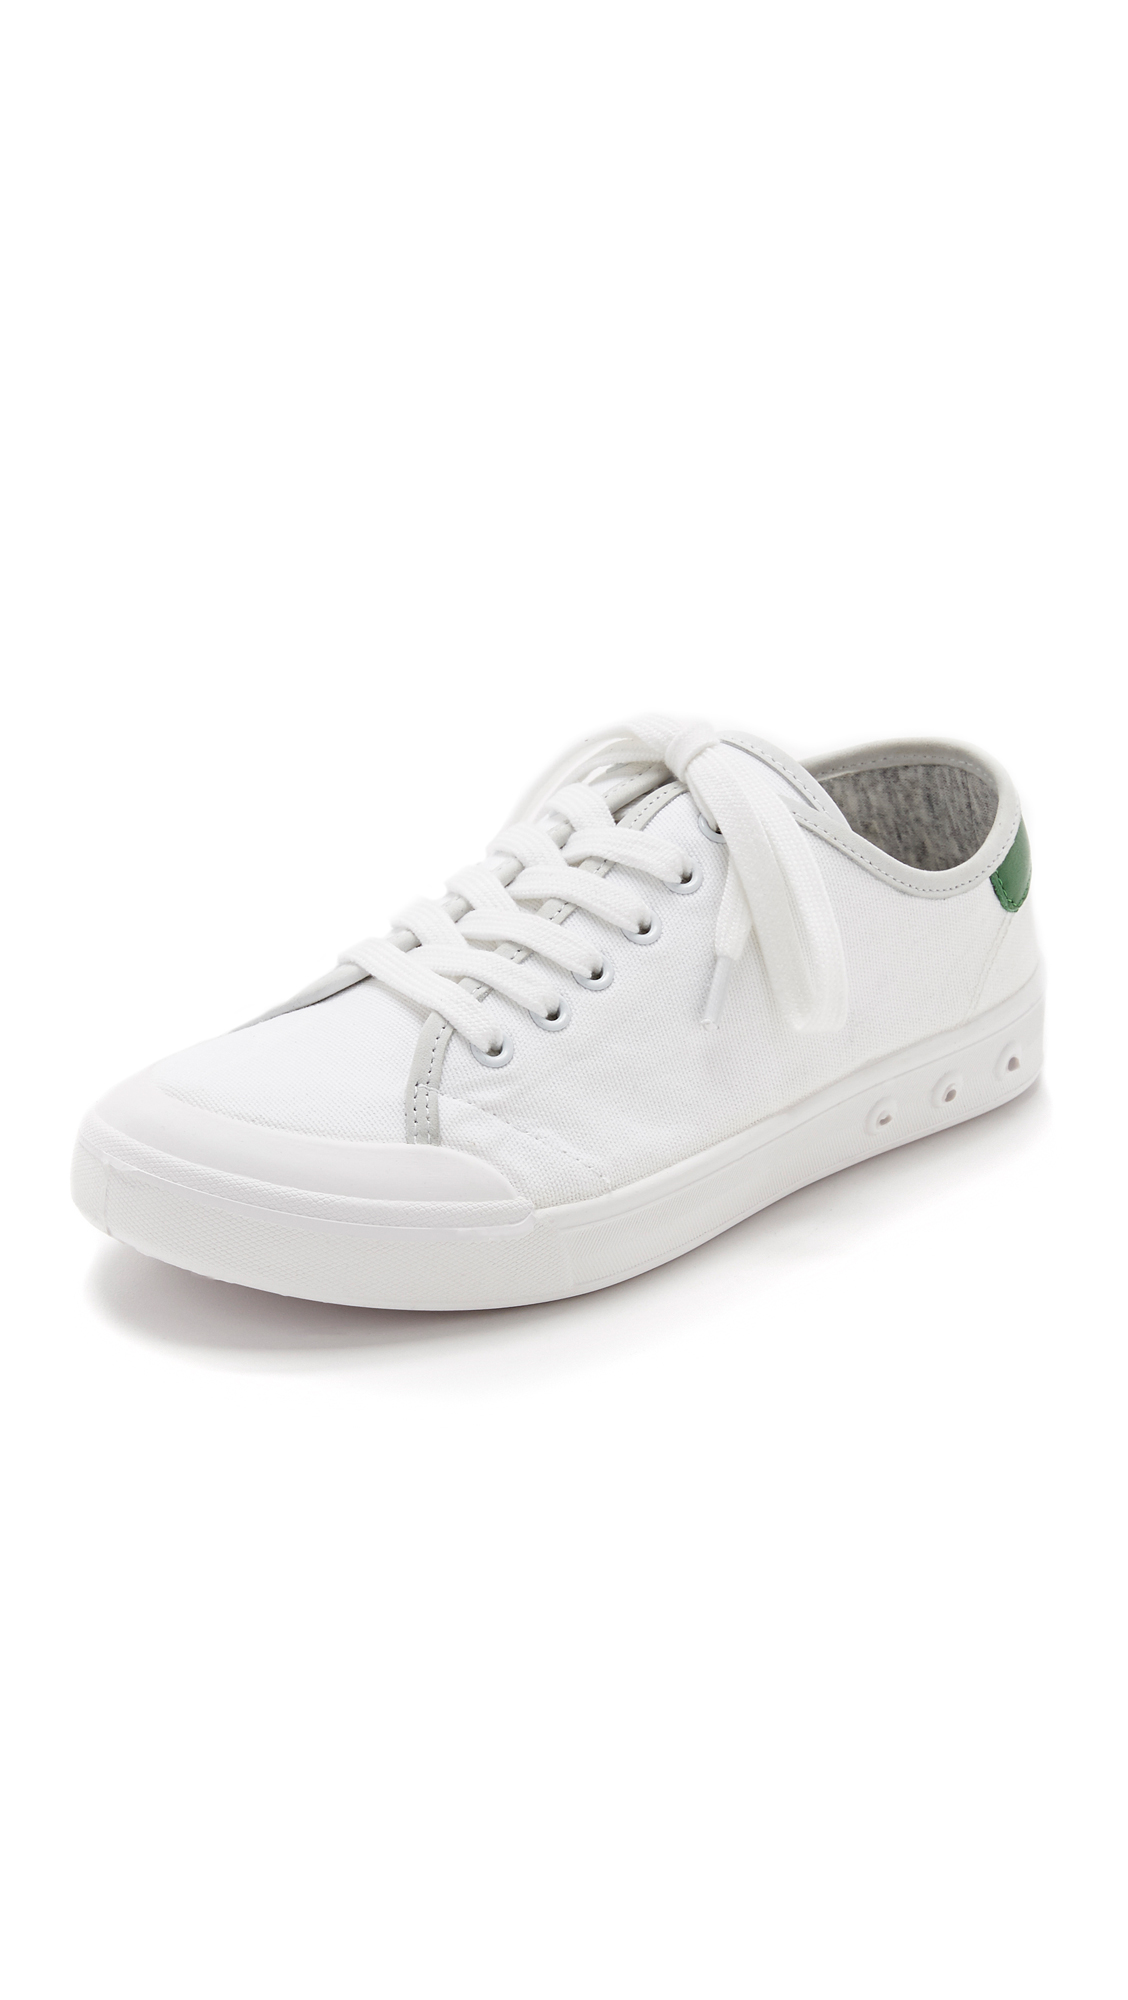 7cb7048bd4233 Rag   Bone Standard Issue Lace Up Sneakers